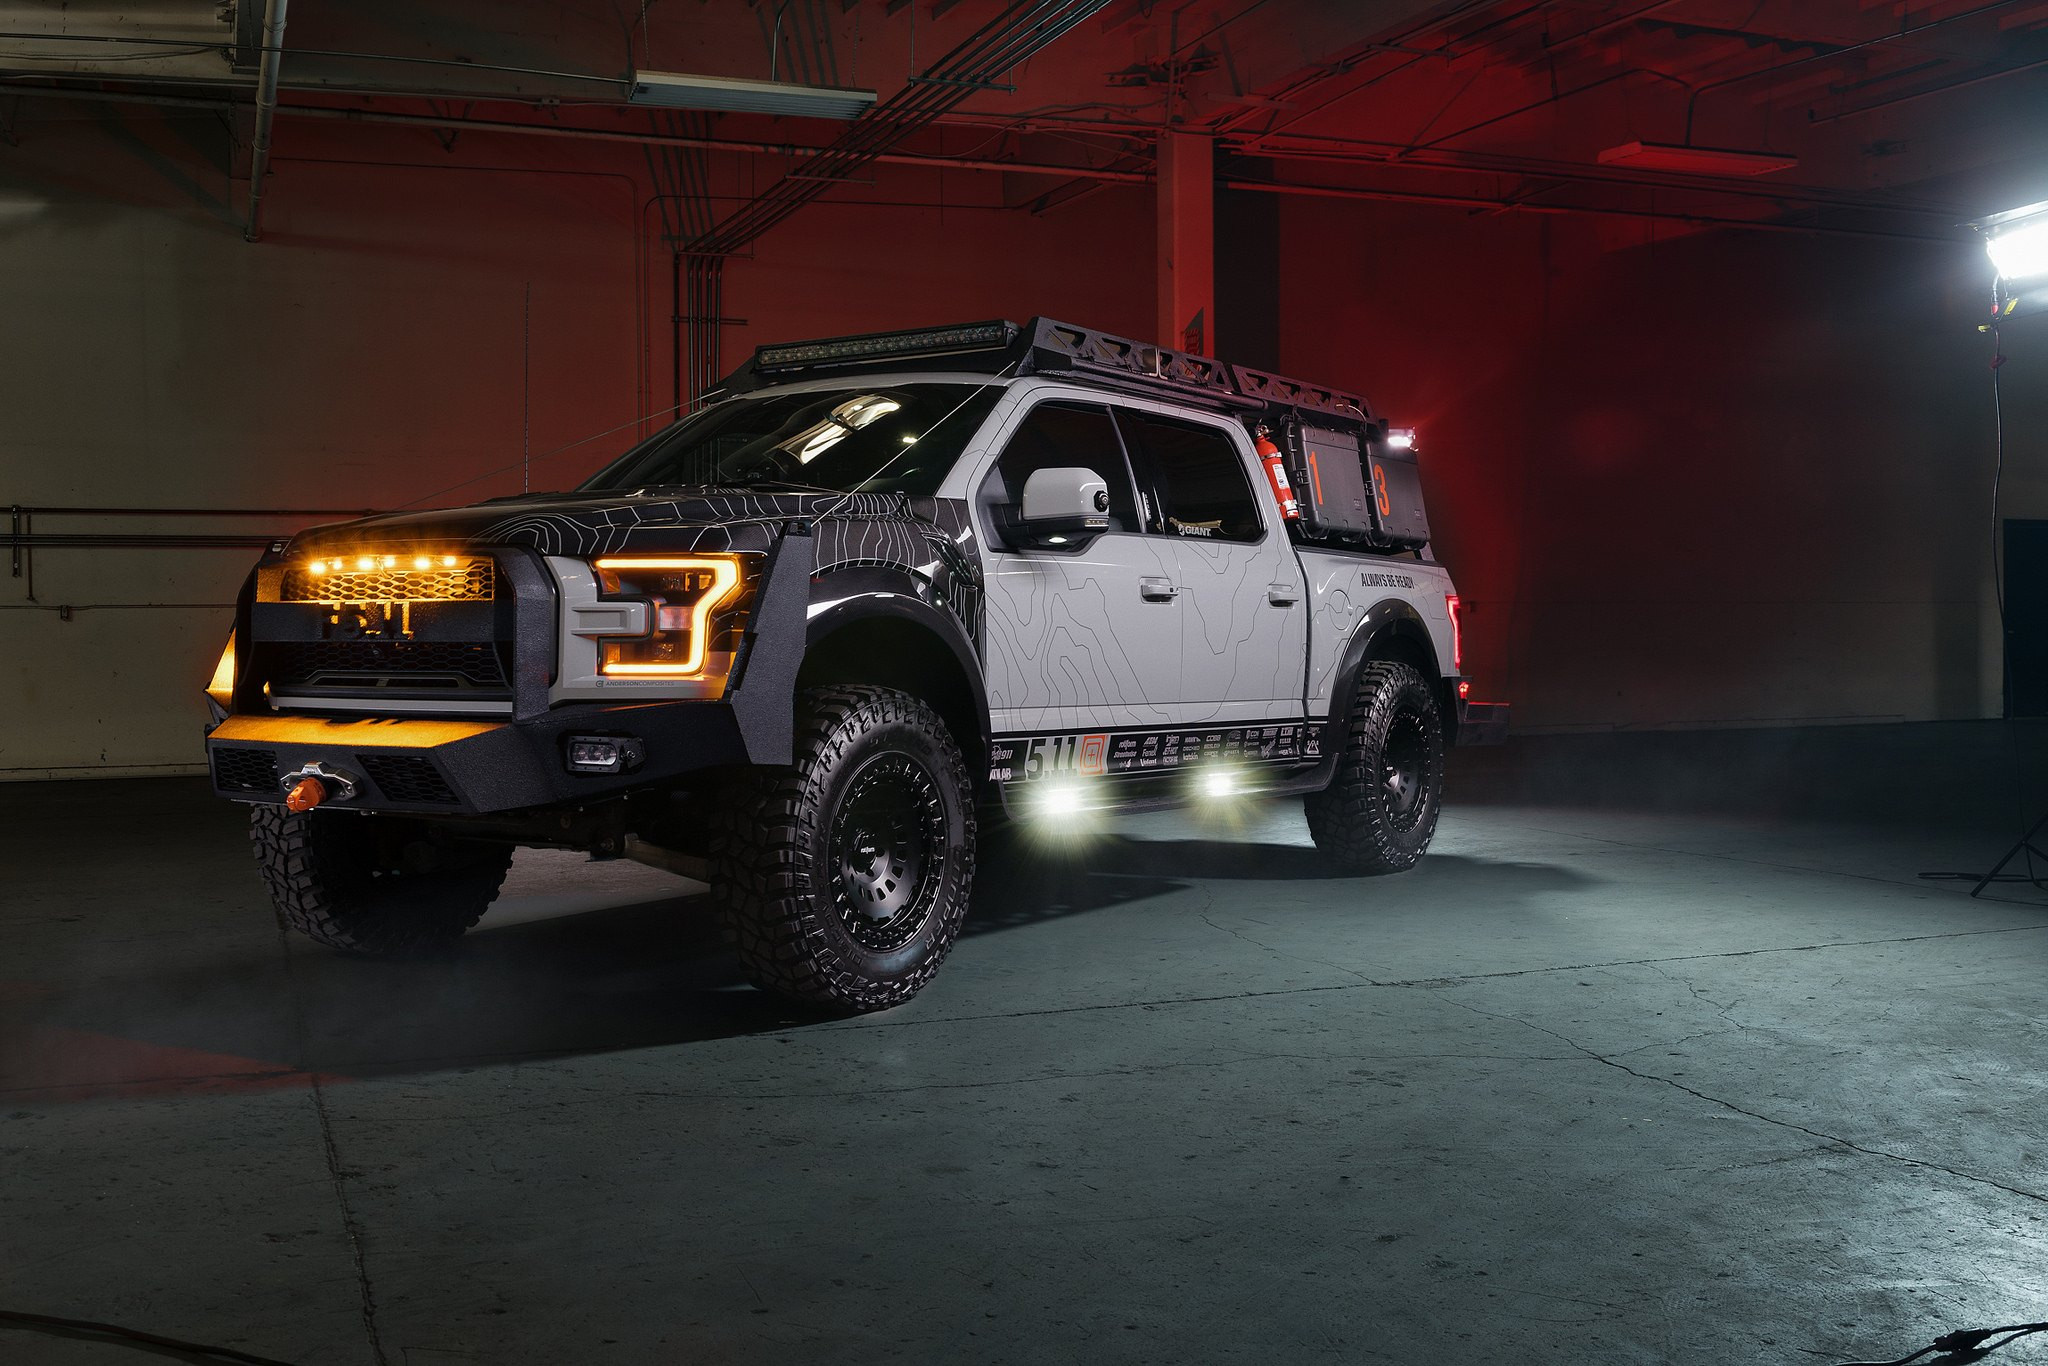 Gray Ford Raptor with Bed Mount Expedition Rack - Photo by Rotiform